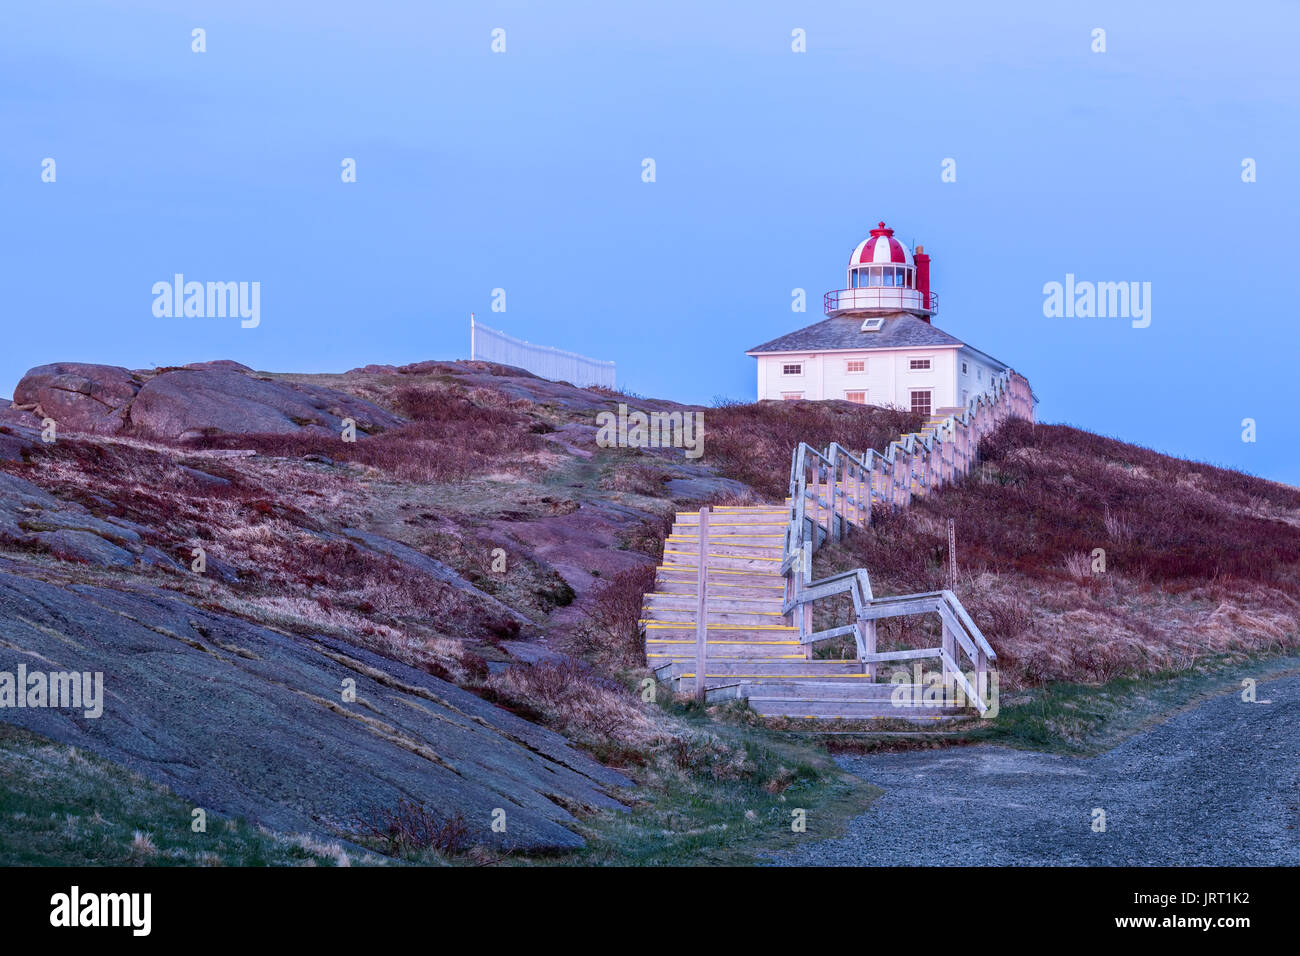 The 1836 Lighthouse at Cape Spear National Historic Site of Canada at dawn. Cape Spear, St. John's, Newfoundland and Labrador, Canada. - Stock Image